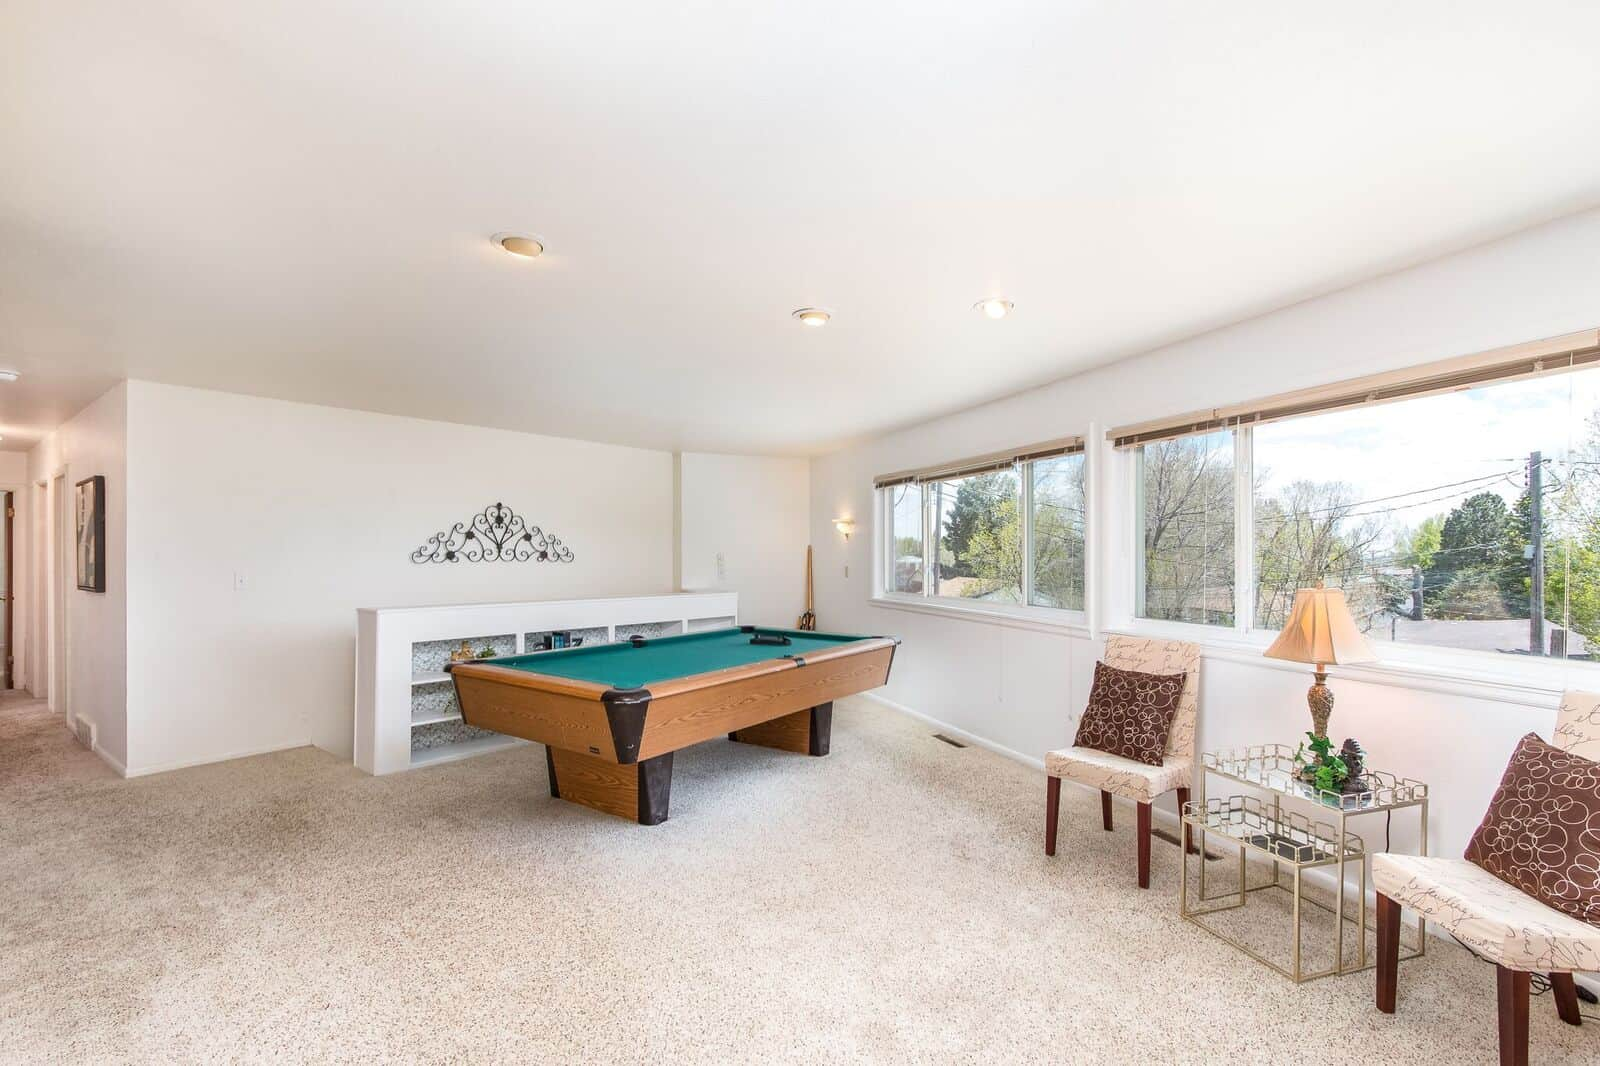 Main Level Living Room with Pool Table and Views